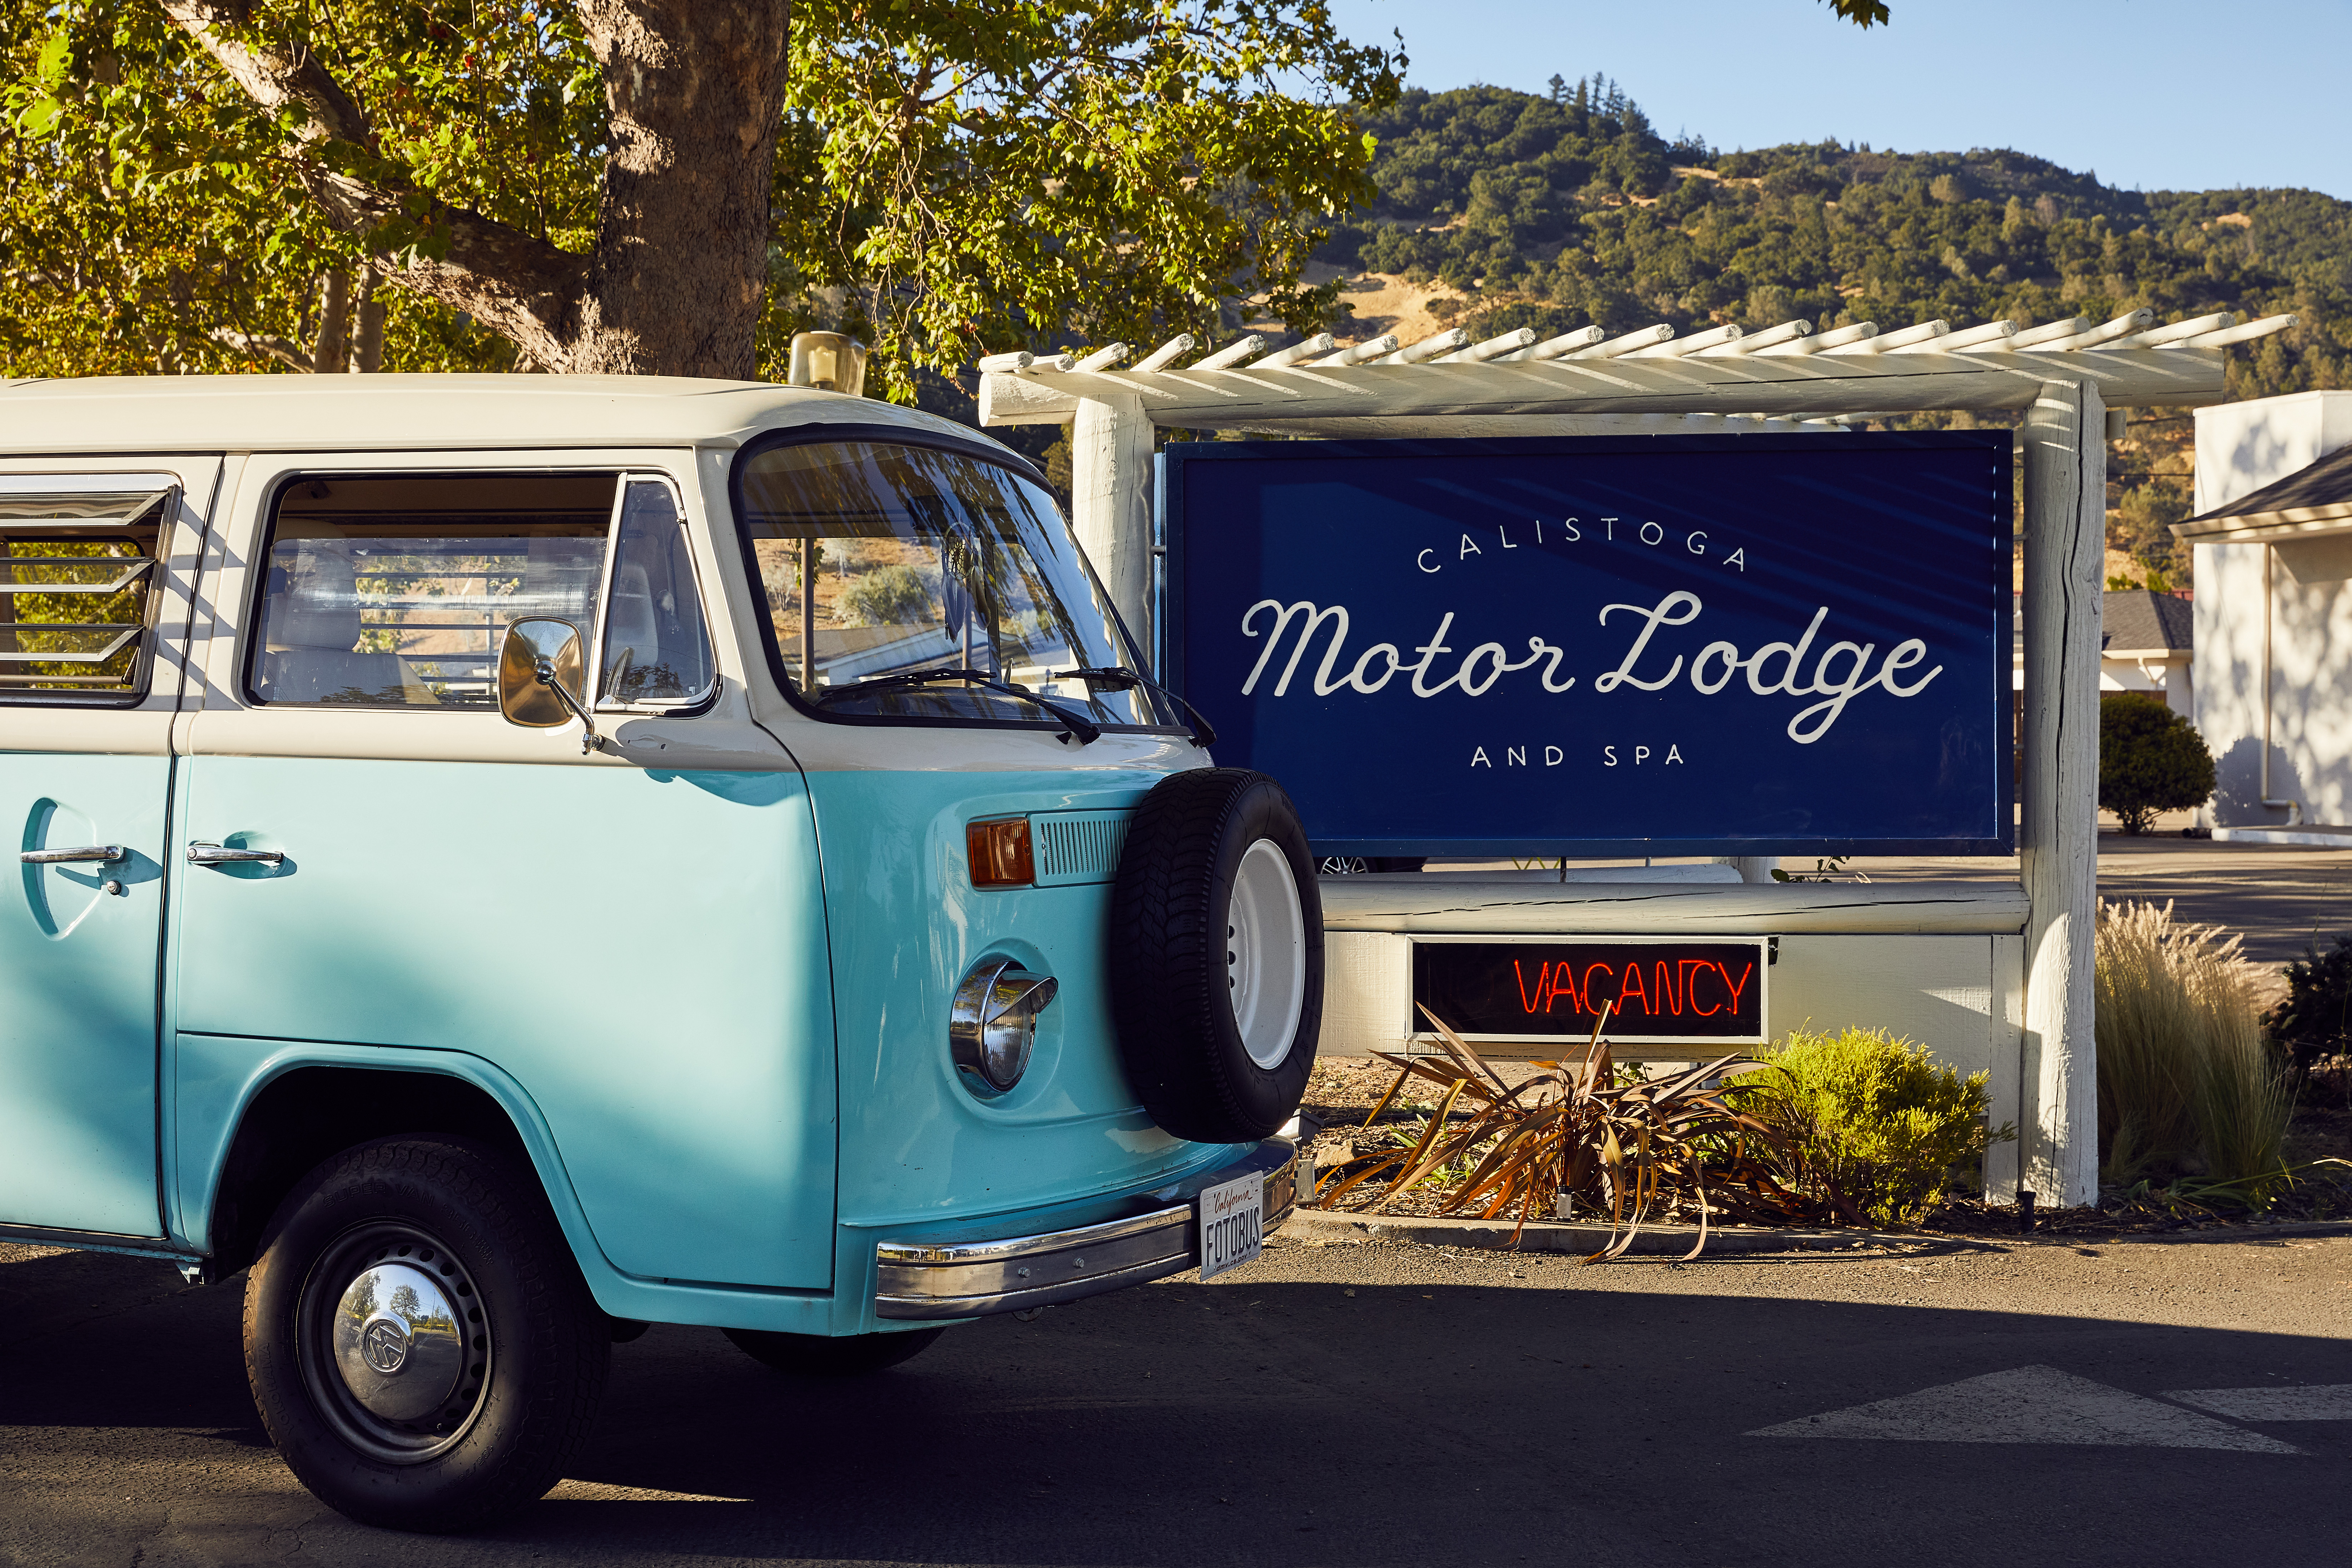 Motel revivalism: How hipster hoteliers created a new roadside attraction